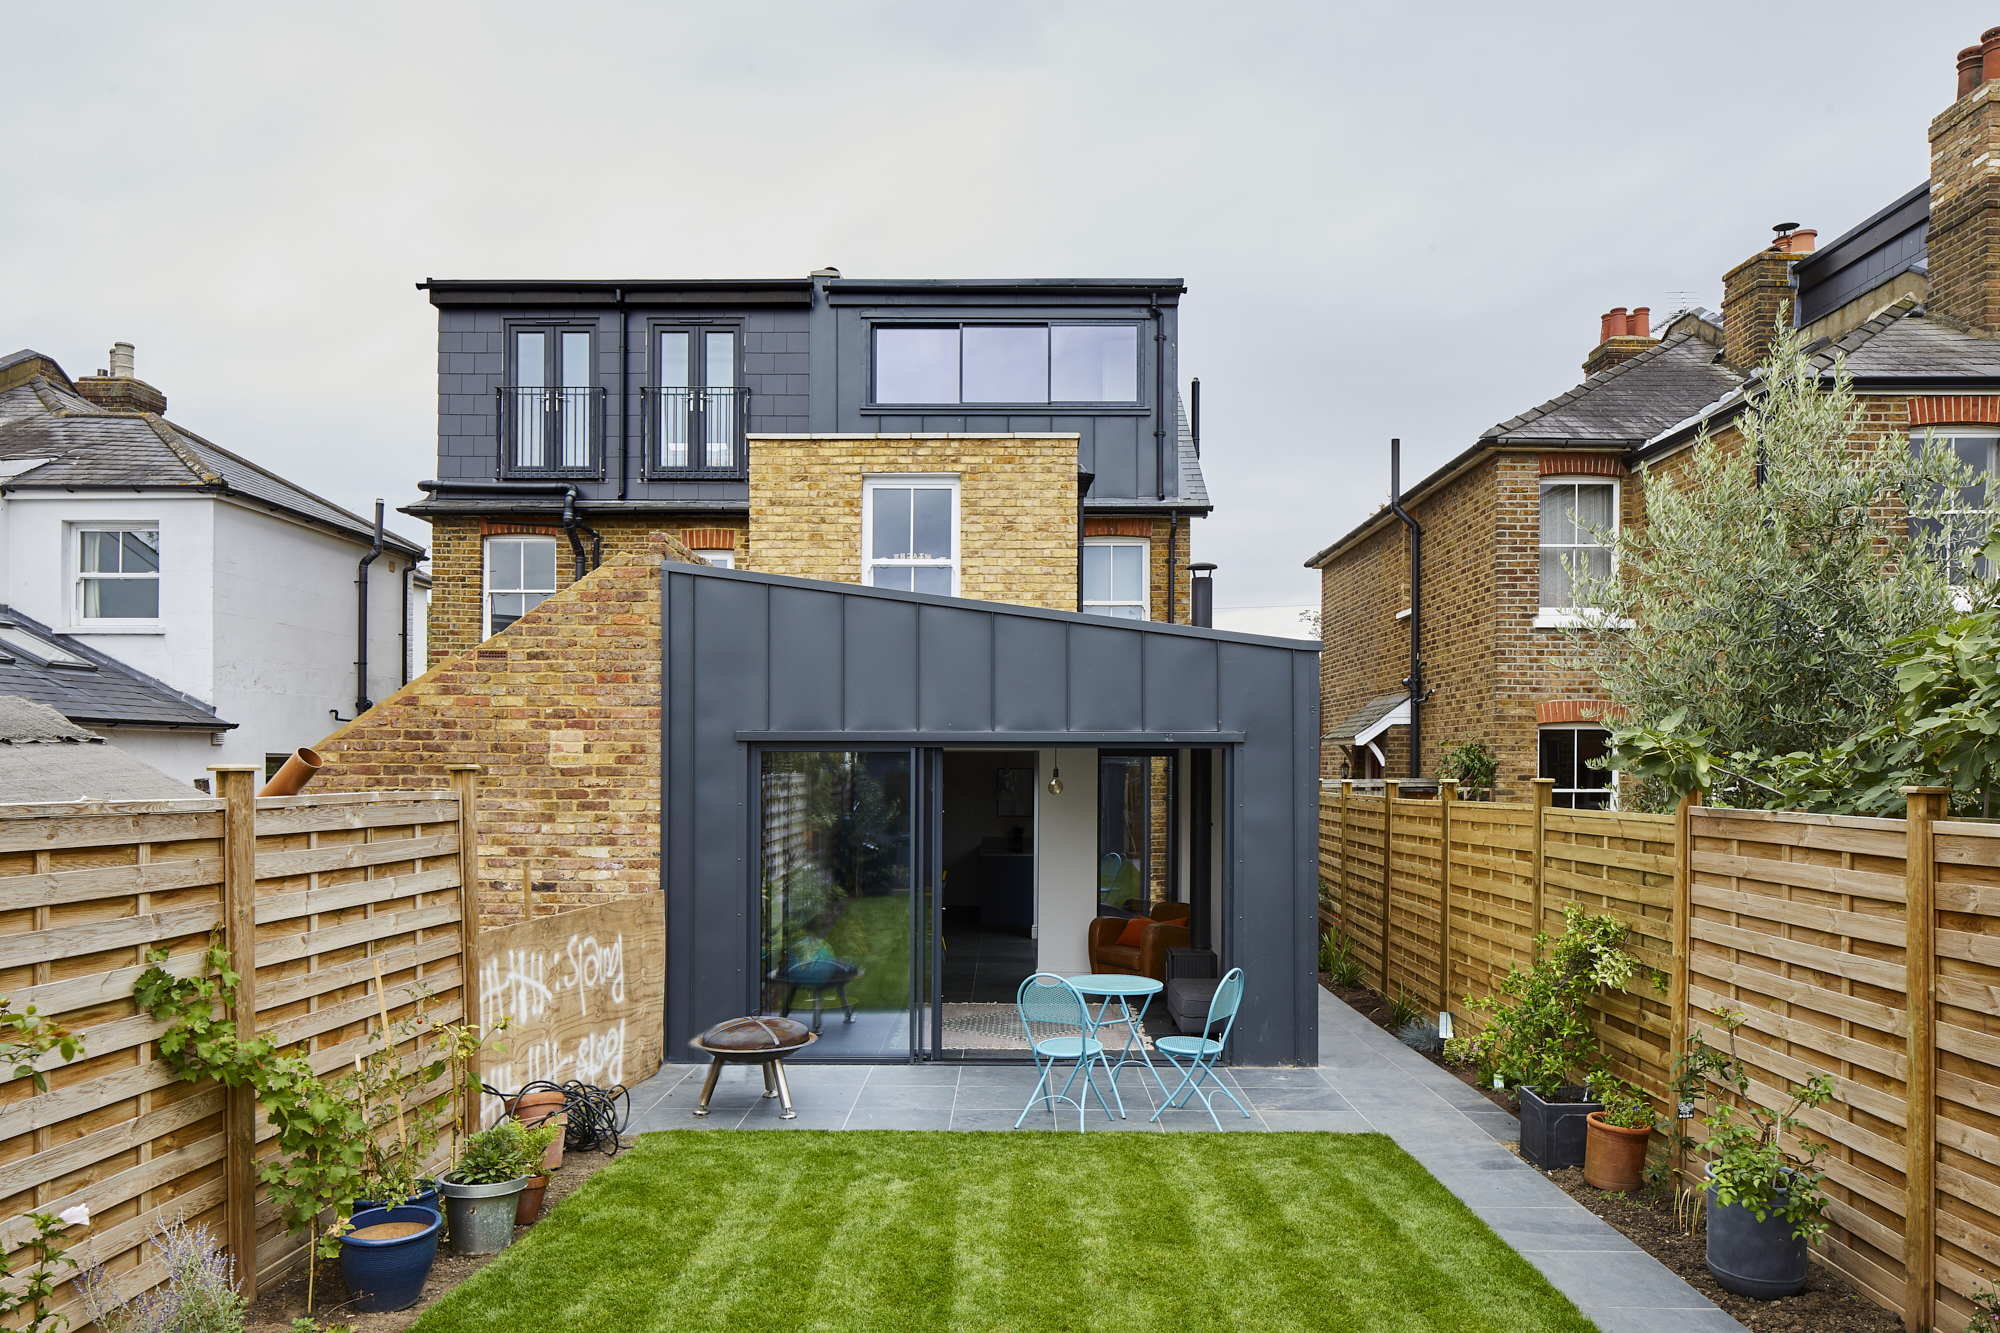 West Molesey, London Extension and Renovation